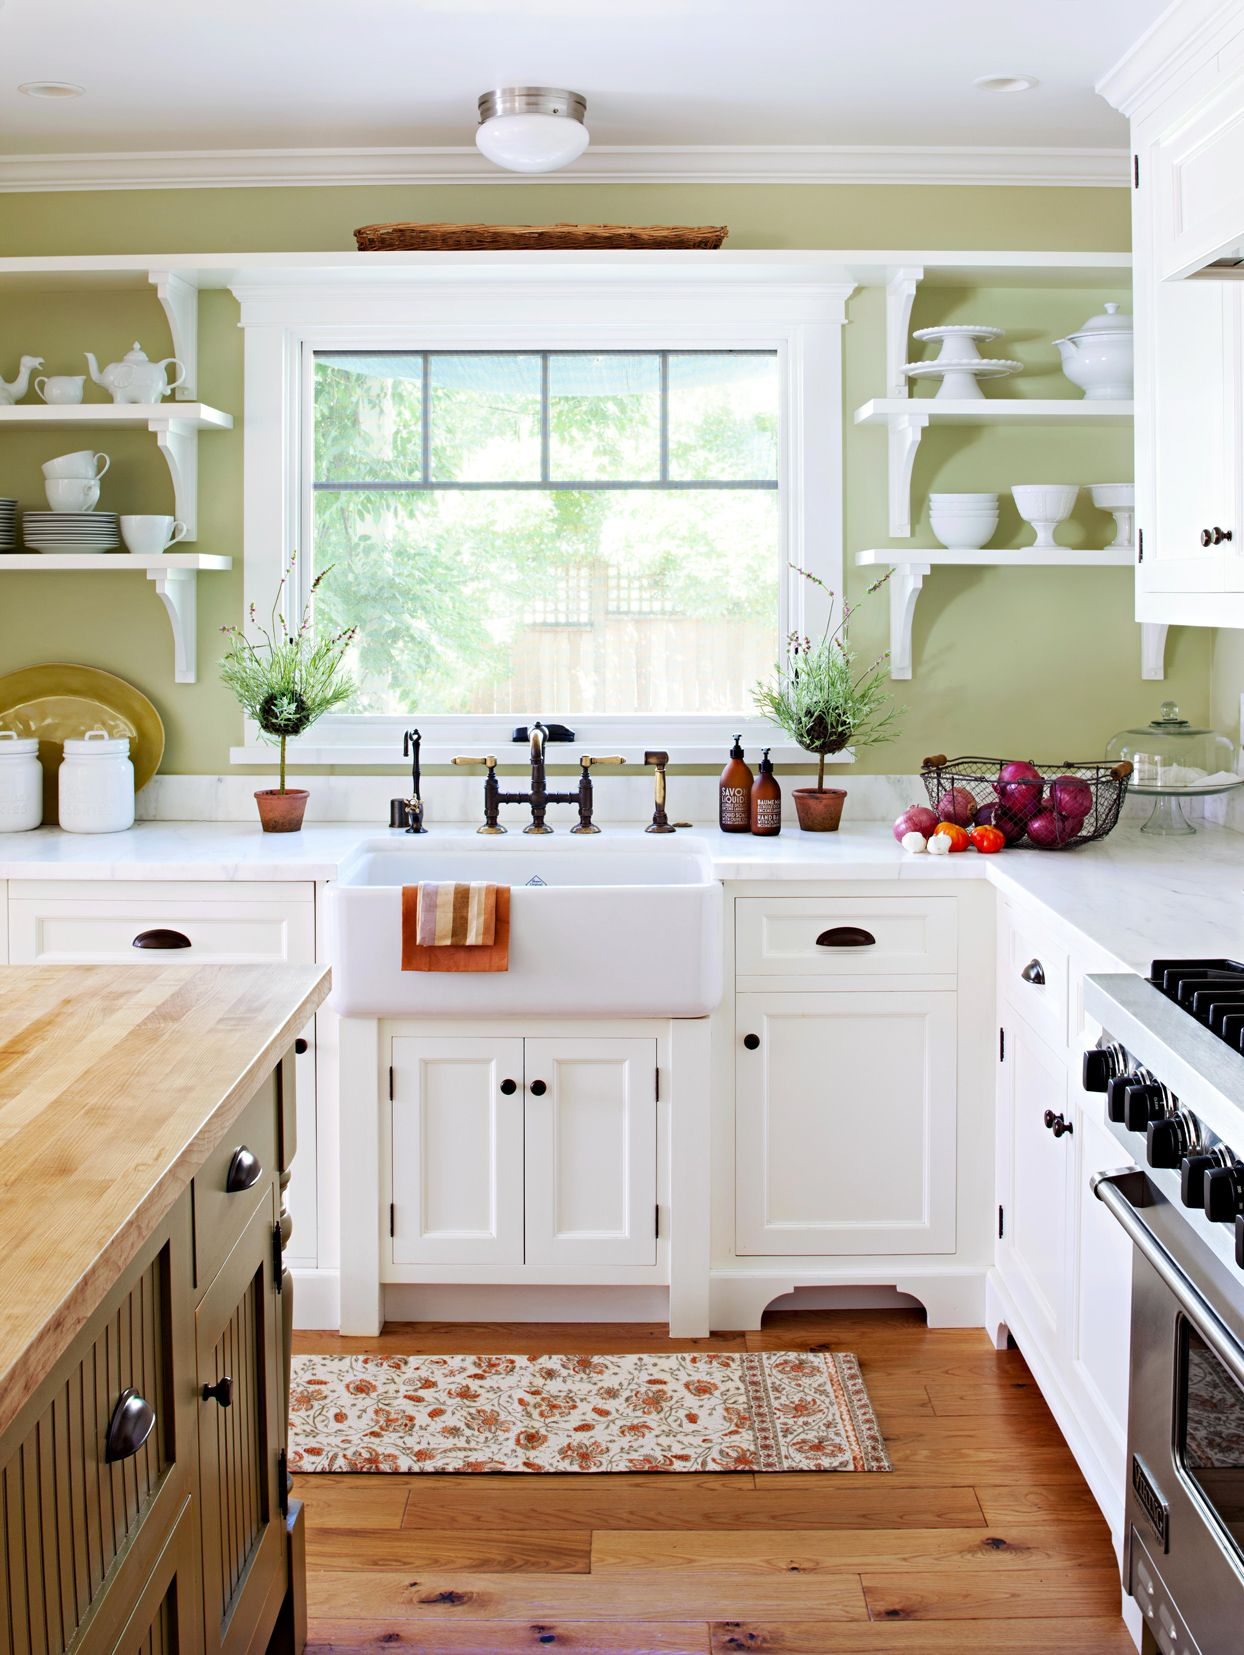 19 Green Color Schemes That Prove This Fresh Hue Goes With Almost Everything In 2020 Small Country Kitchens Kitchen Cabinet Styles Country Kitchen Designs